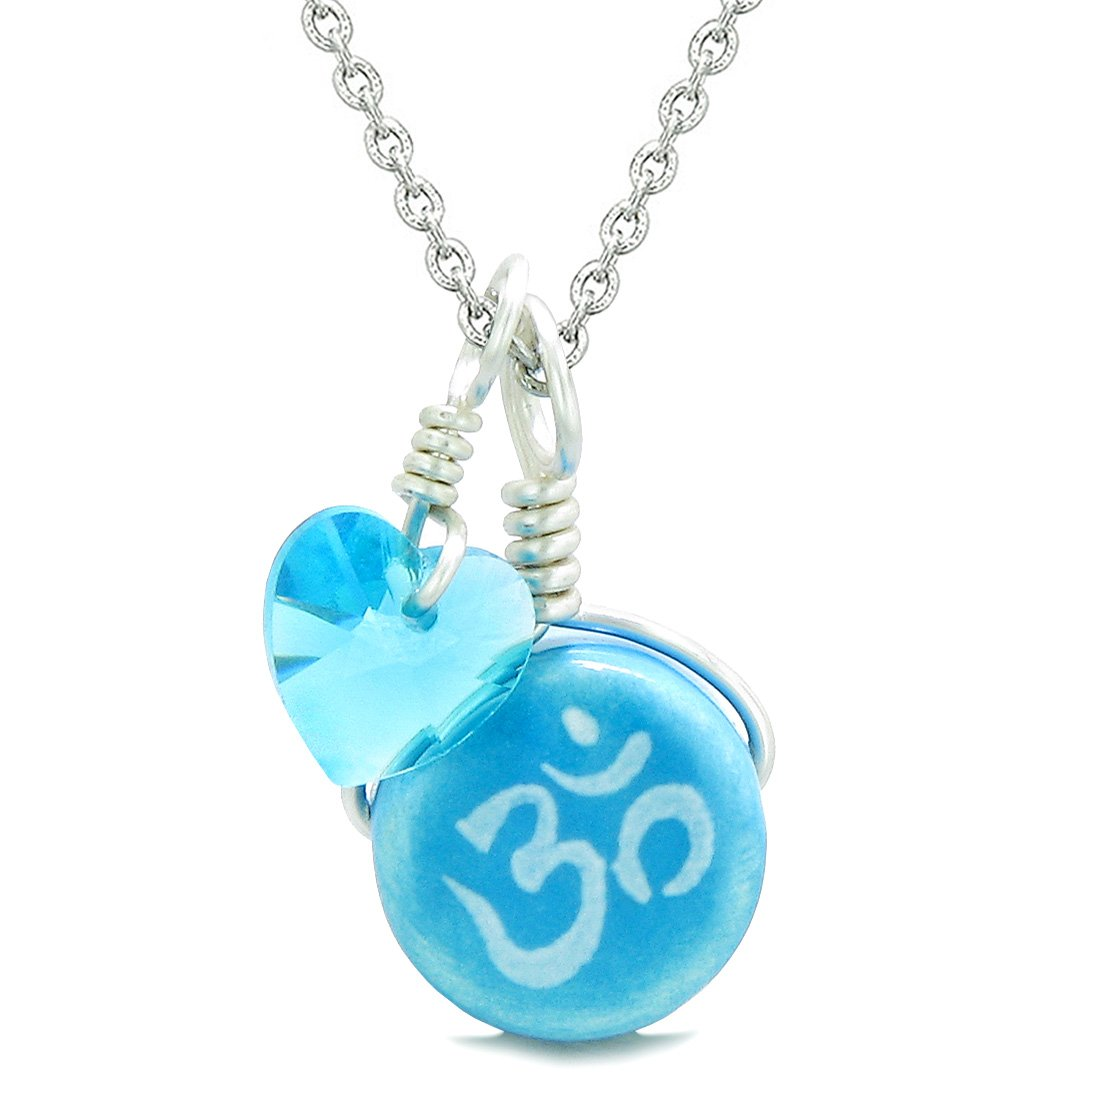 Handcrafted Cute Ceramic Lucky Charm Aqua OM Ohm Tibetan Blue Heart Amulet Pendant 18 Inch Necklace